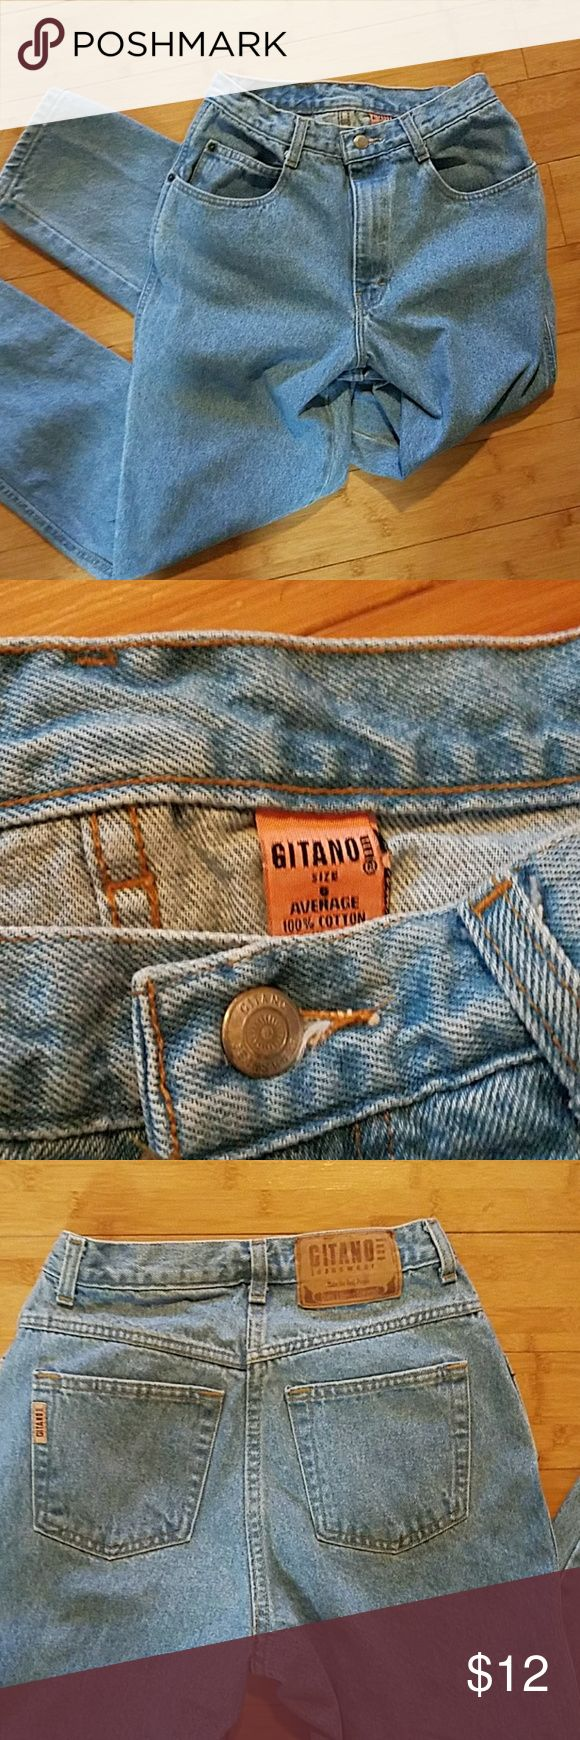 "Vintage Gitano High Waist Mom Jeans Very good condition.  Waist 13"" Inseam 29"". Thanks for looking! Gitano Jeans Straight Leg"